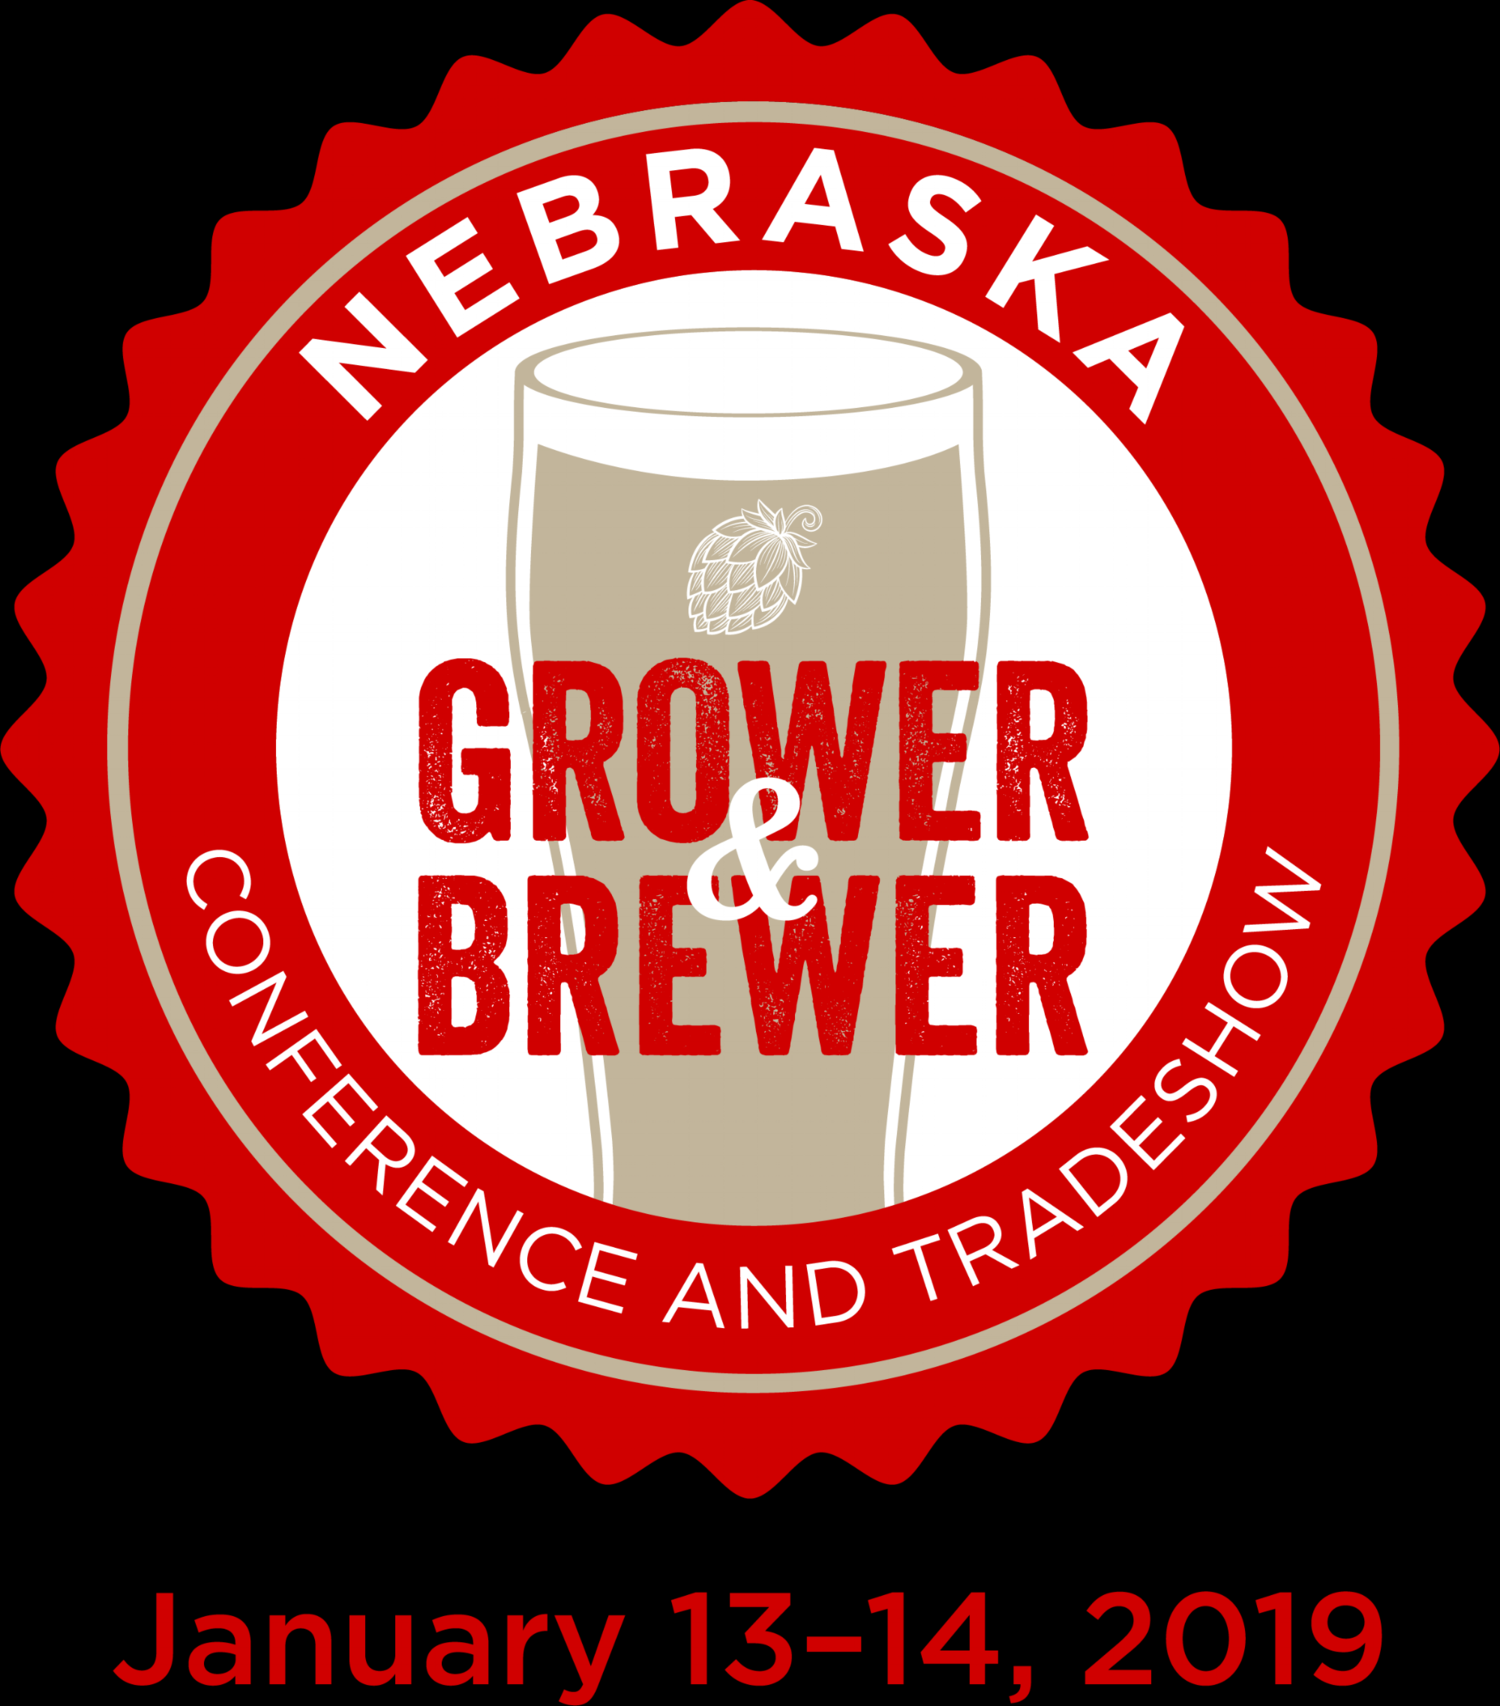 Nebraska Grower and Brewer Conference & Trade Show